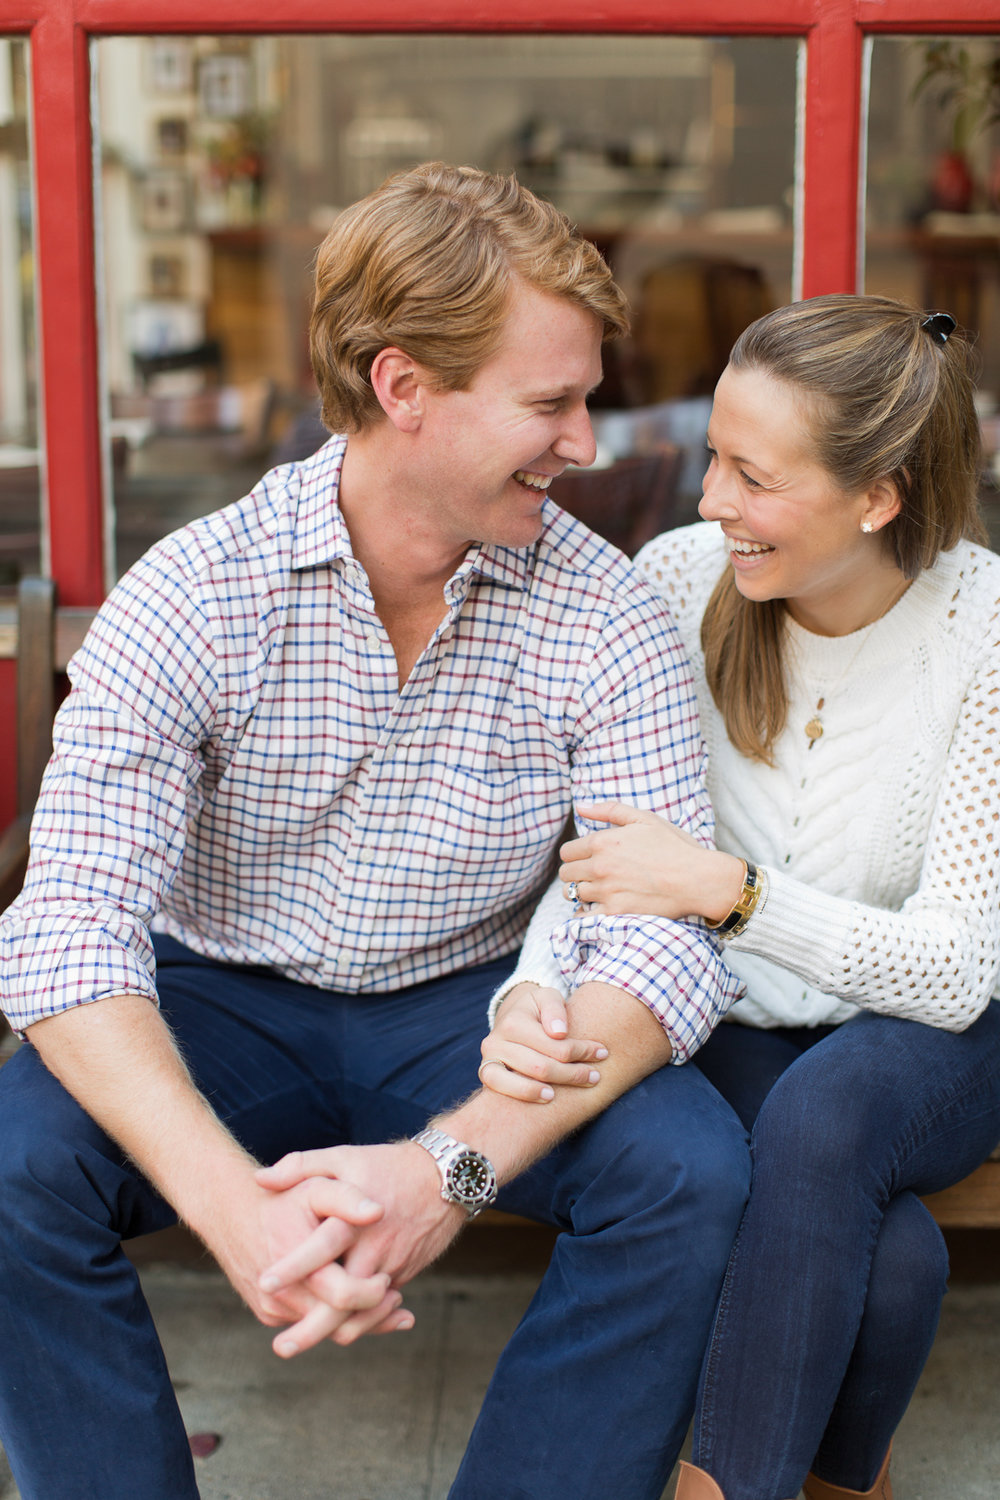 Melissa Kruse Photography - Megan & Tyler West Village Engagement Photos-40.jpg